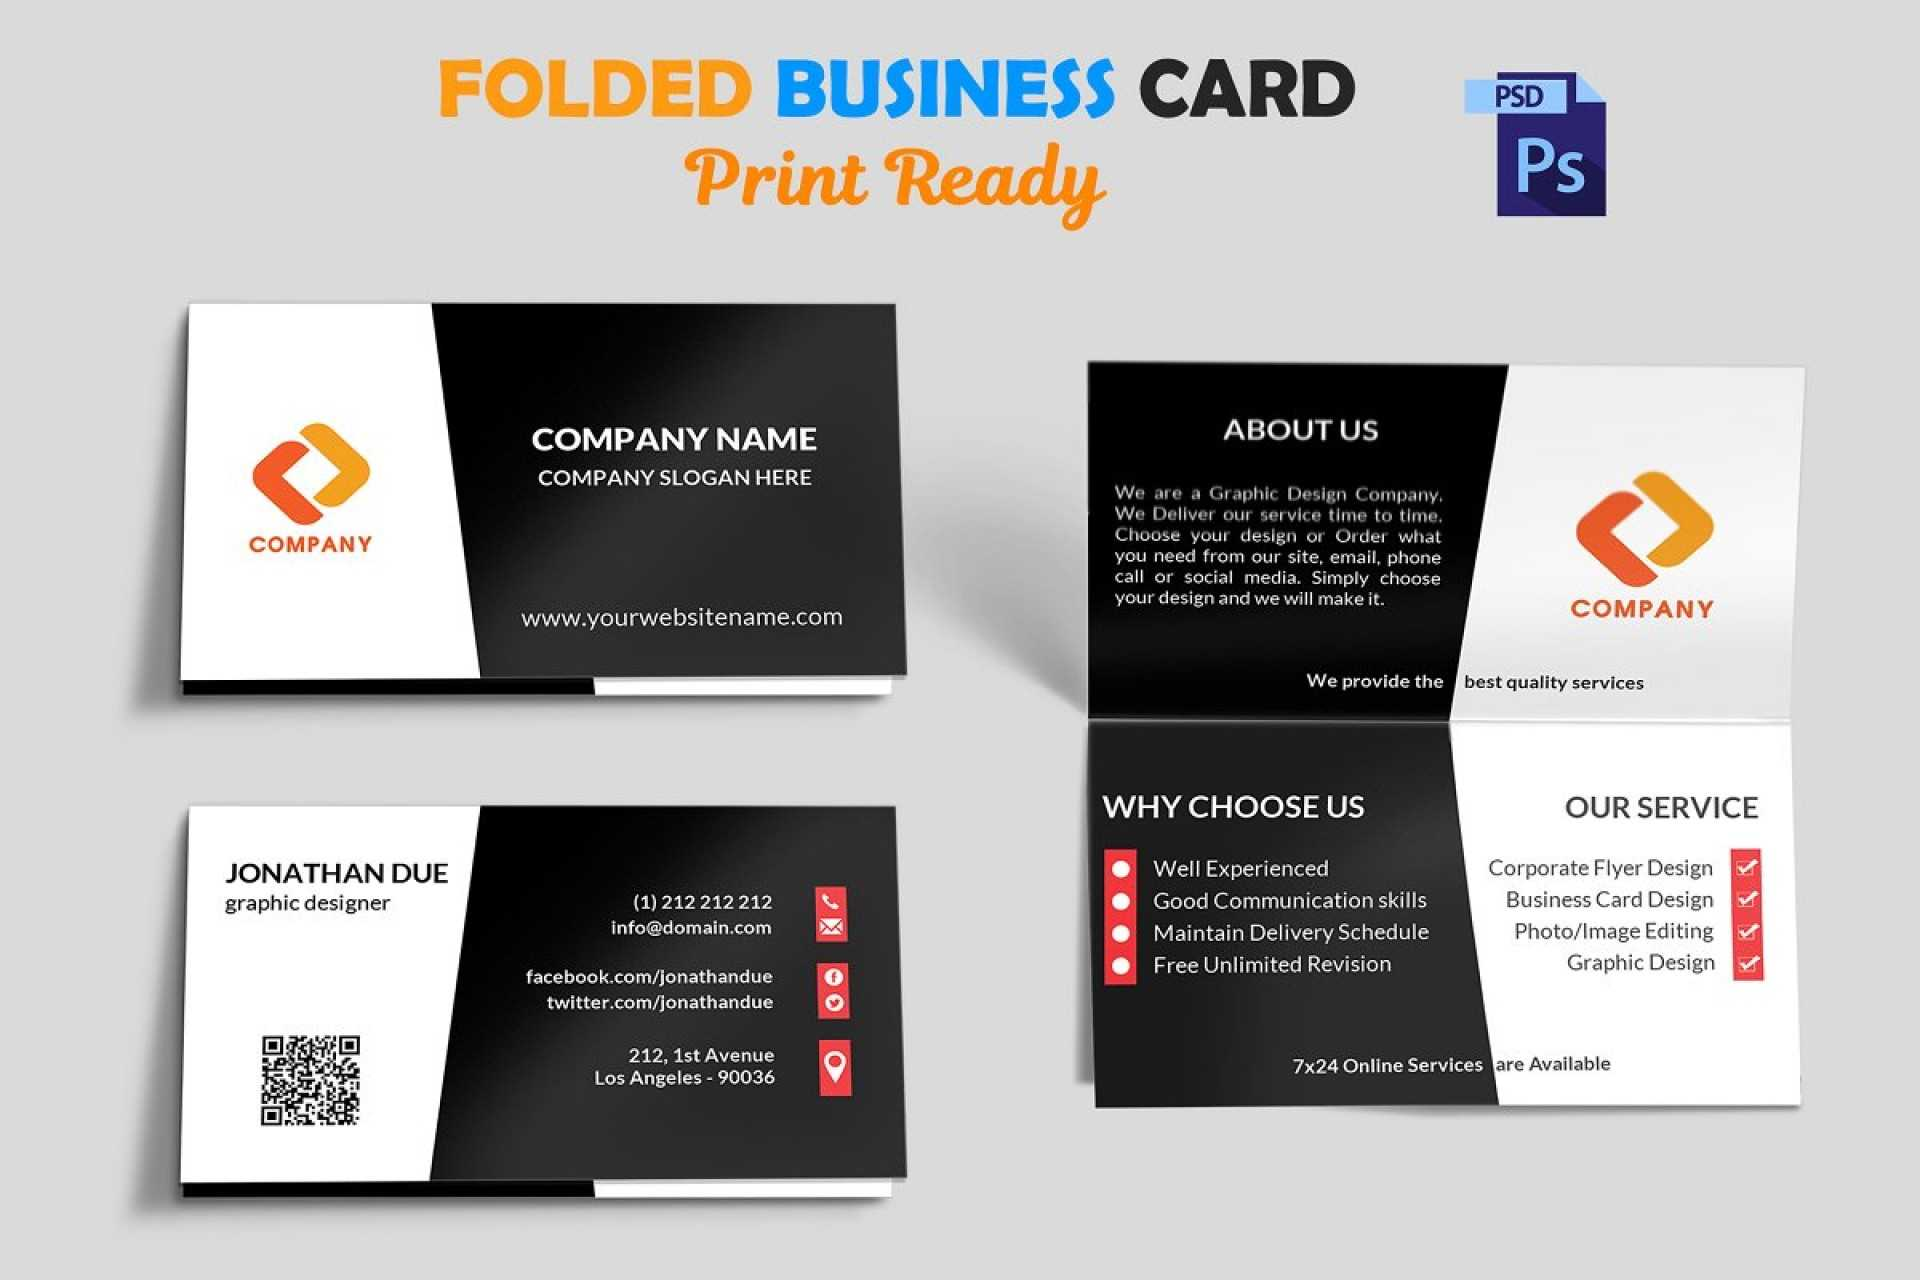 002 Template Ideas Folded Business Card Mock Up Fascinating Regarding Fold Over Business Card Template